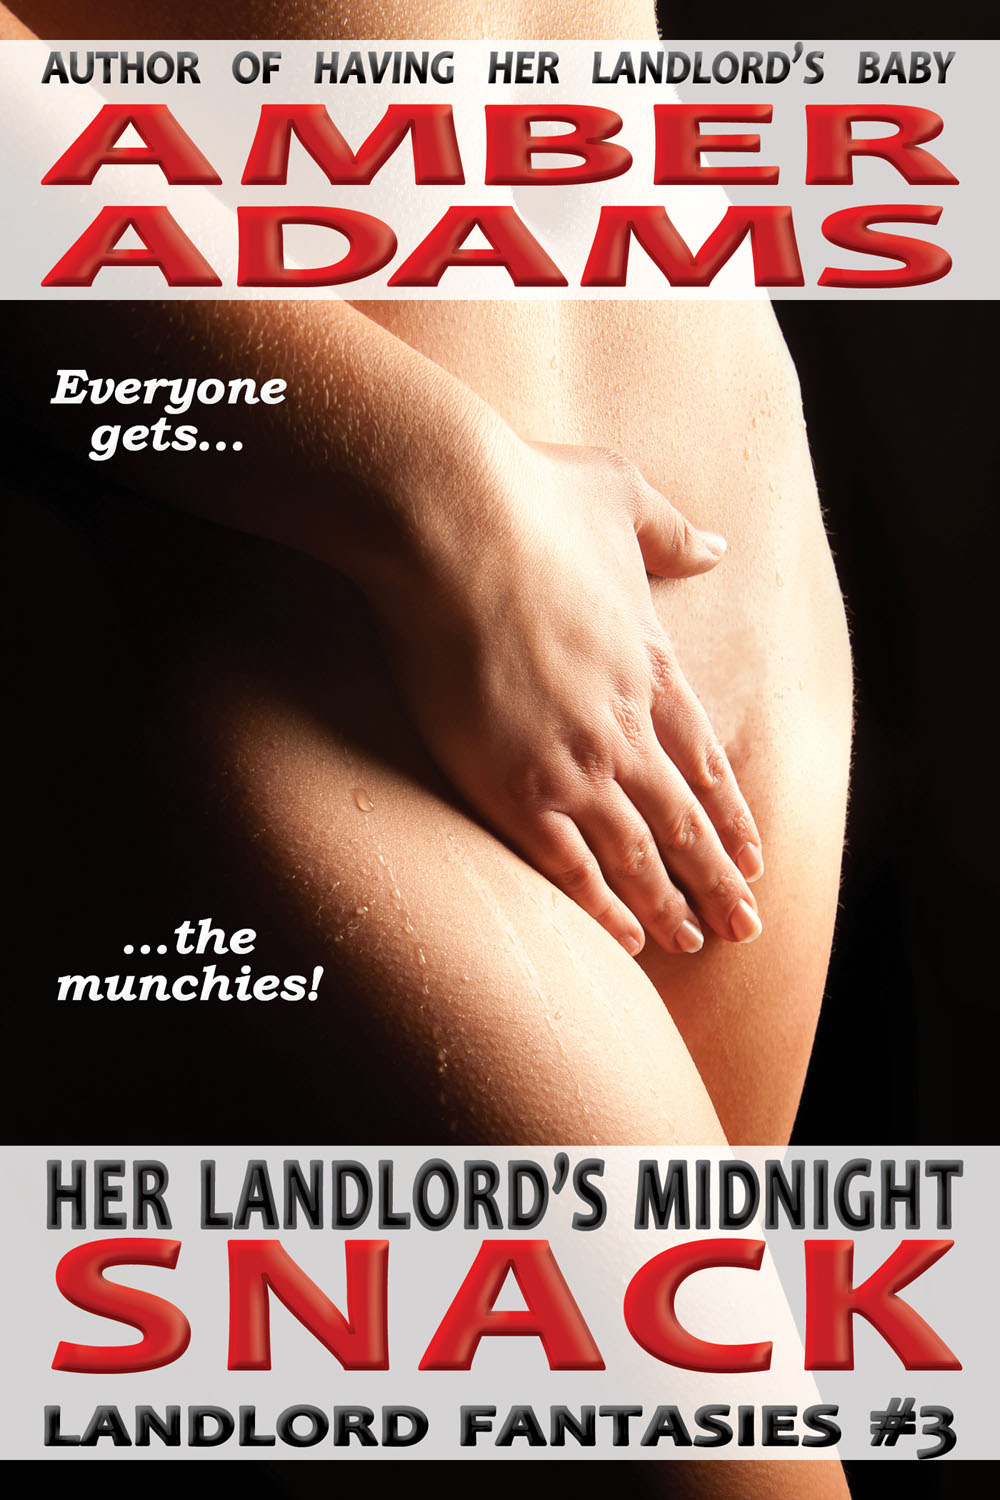 Amber Adams - Her Landlord's Midnight Snack